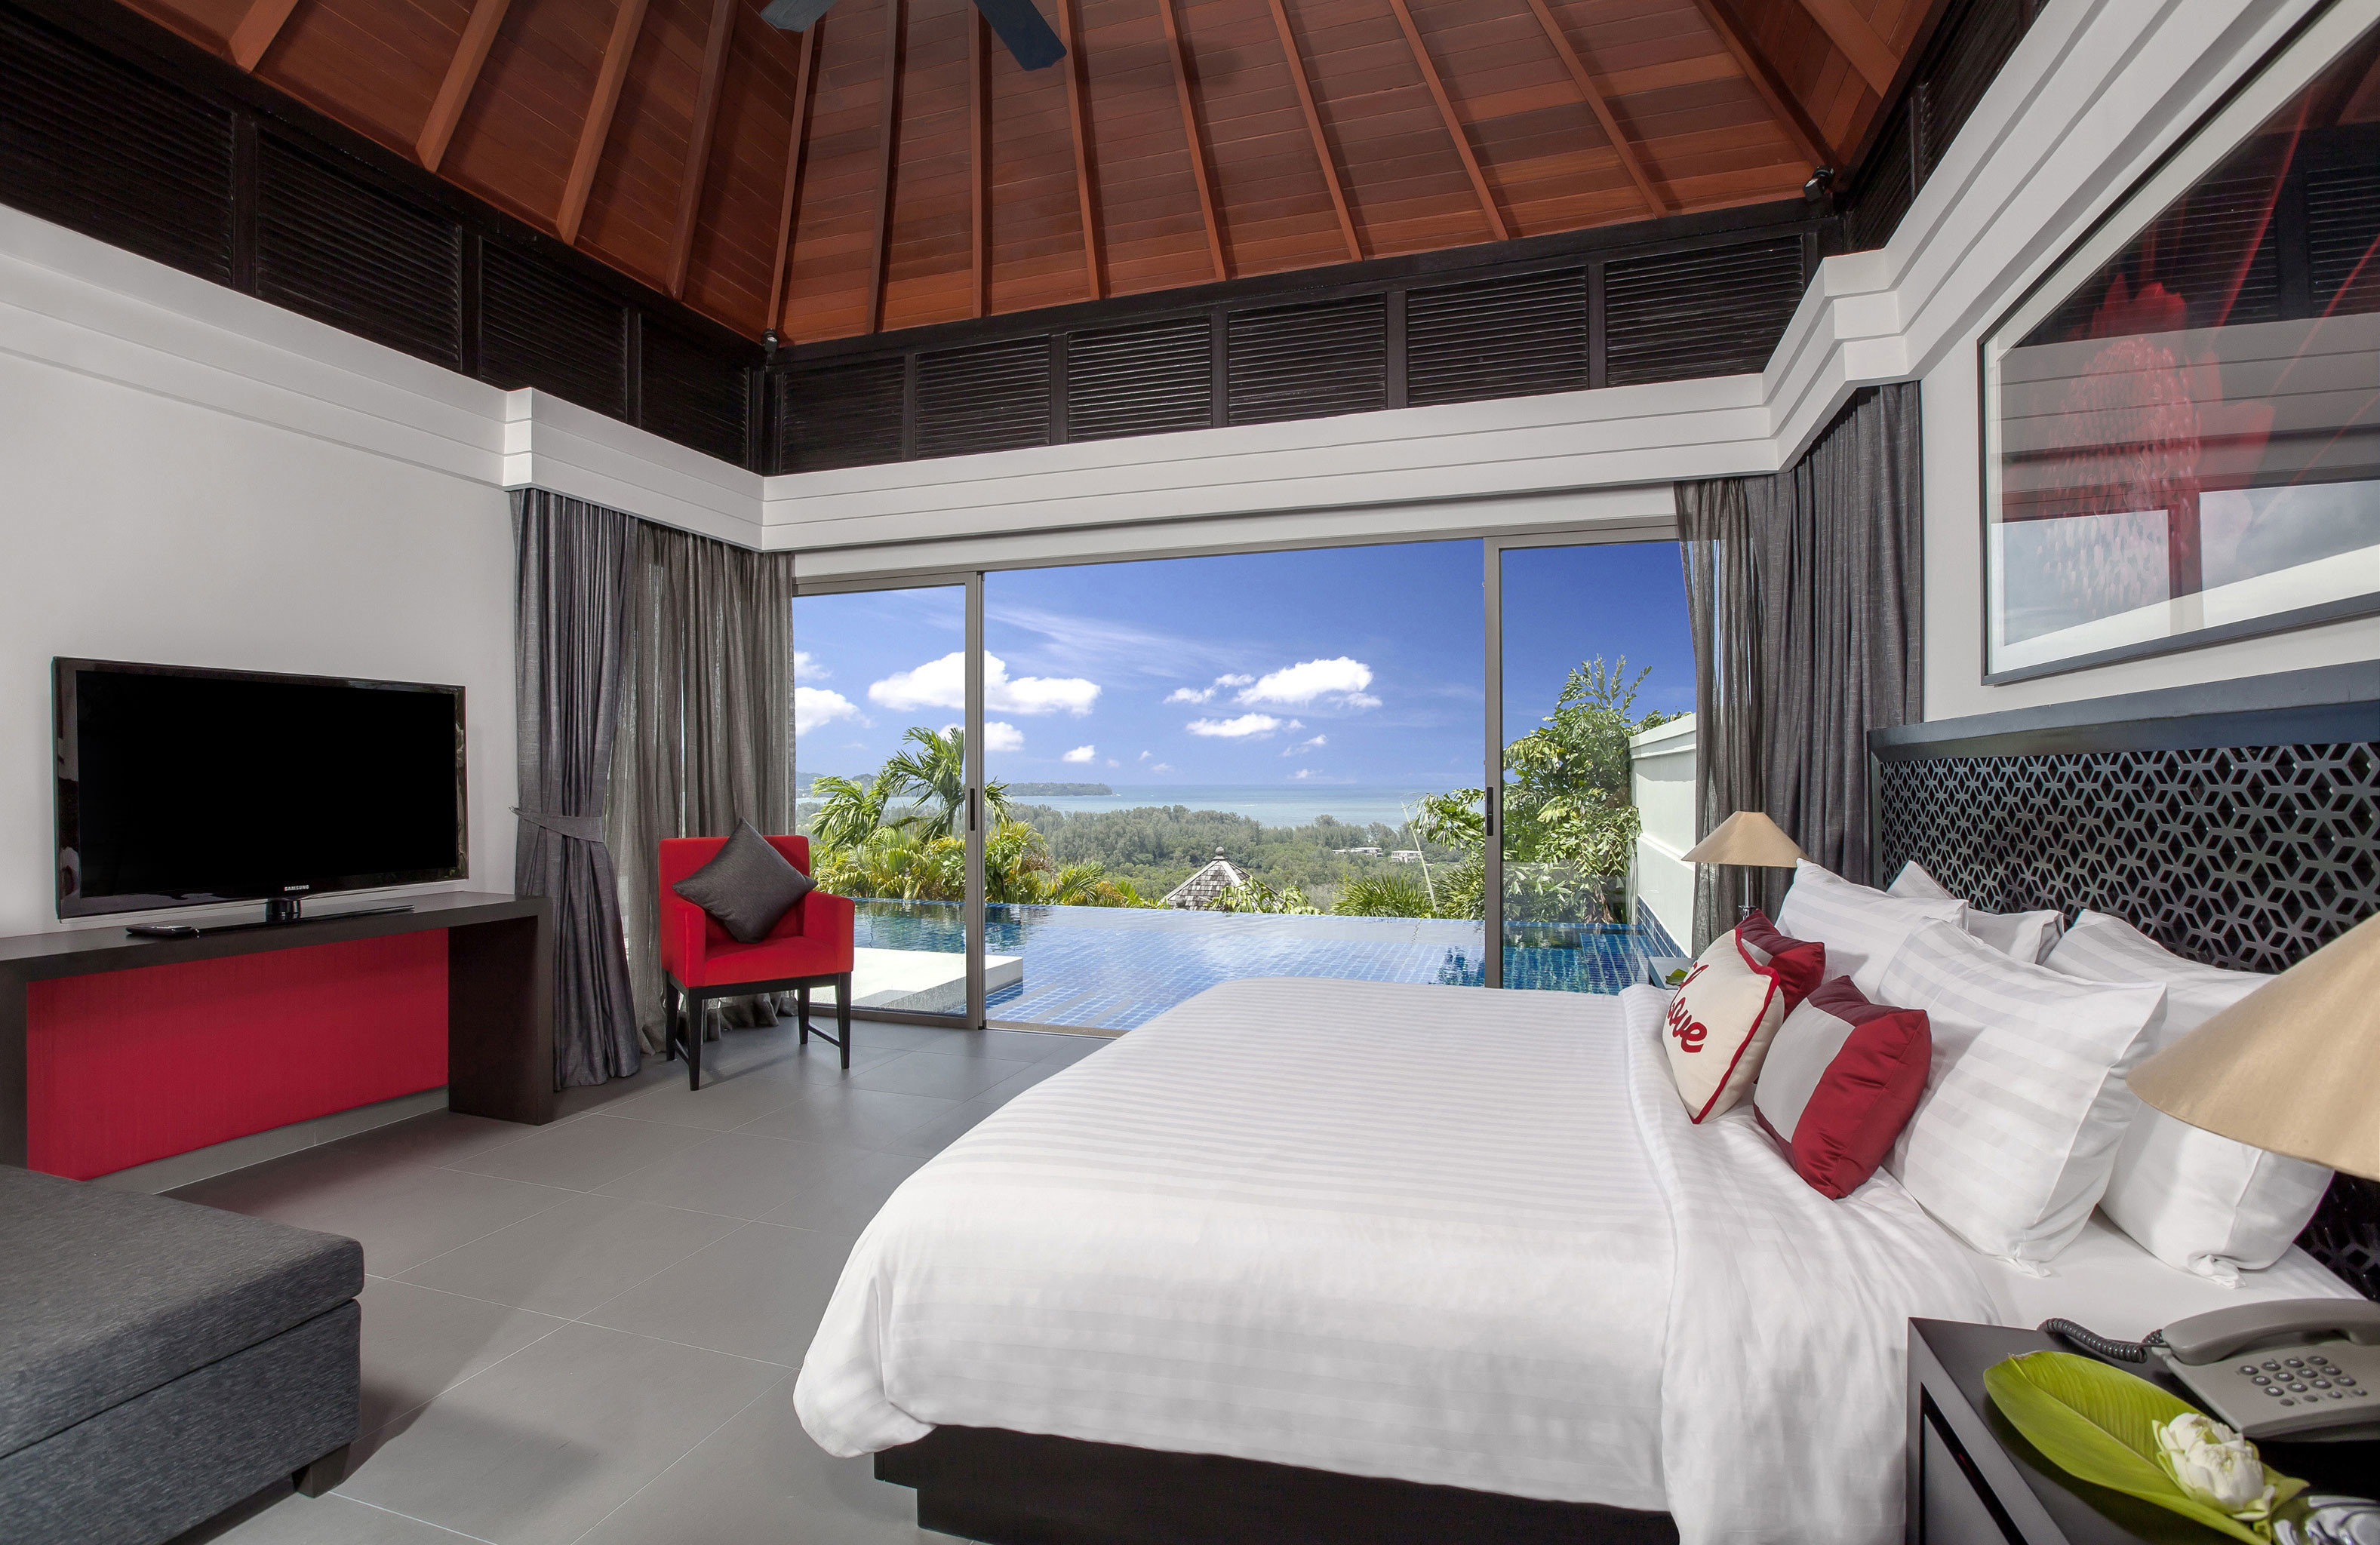 Beachfront Luxury Modern Pool Scenic views property Bedroom home cottage Villa Suite pillow